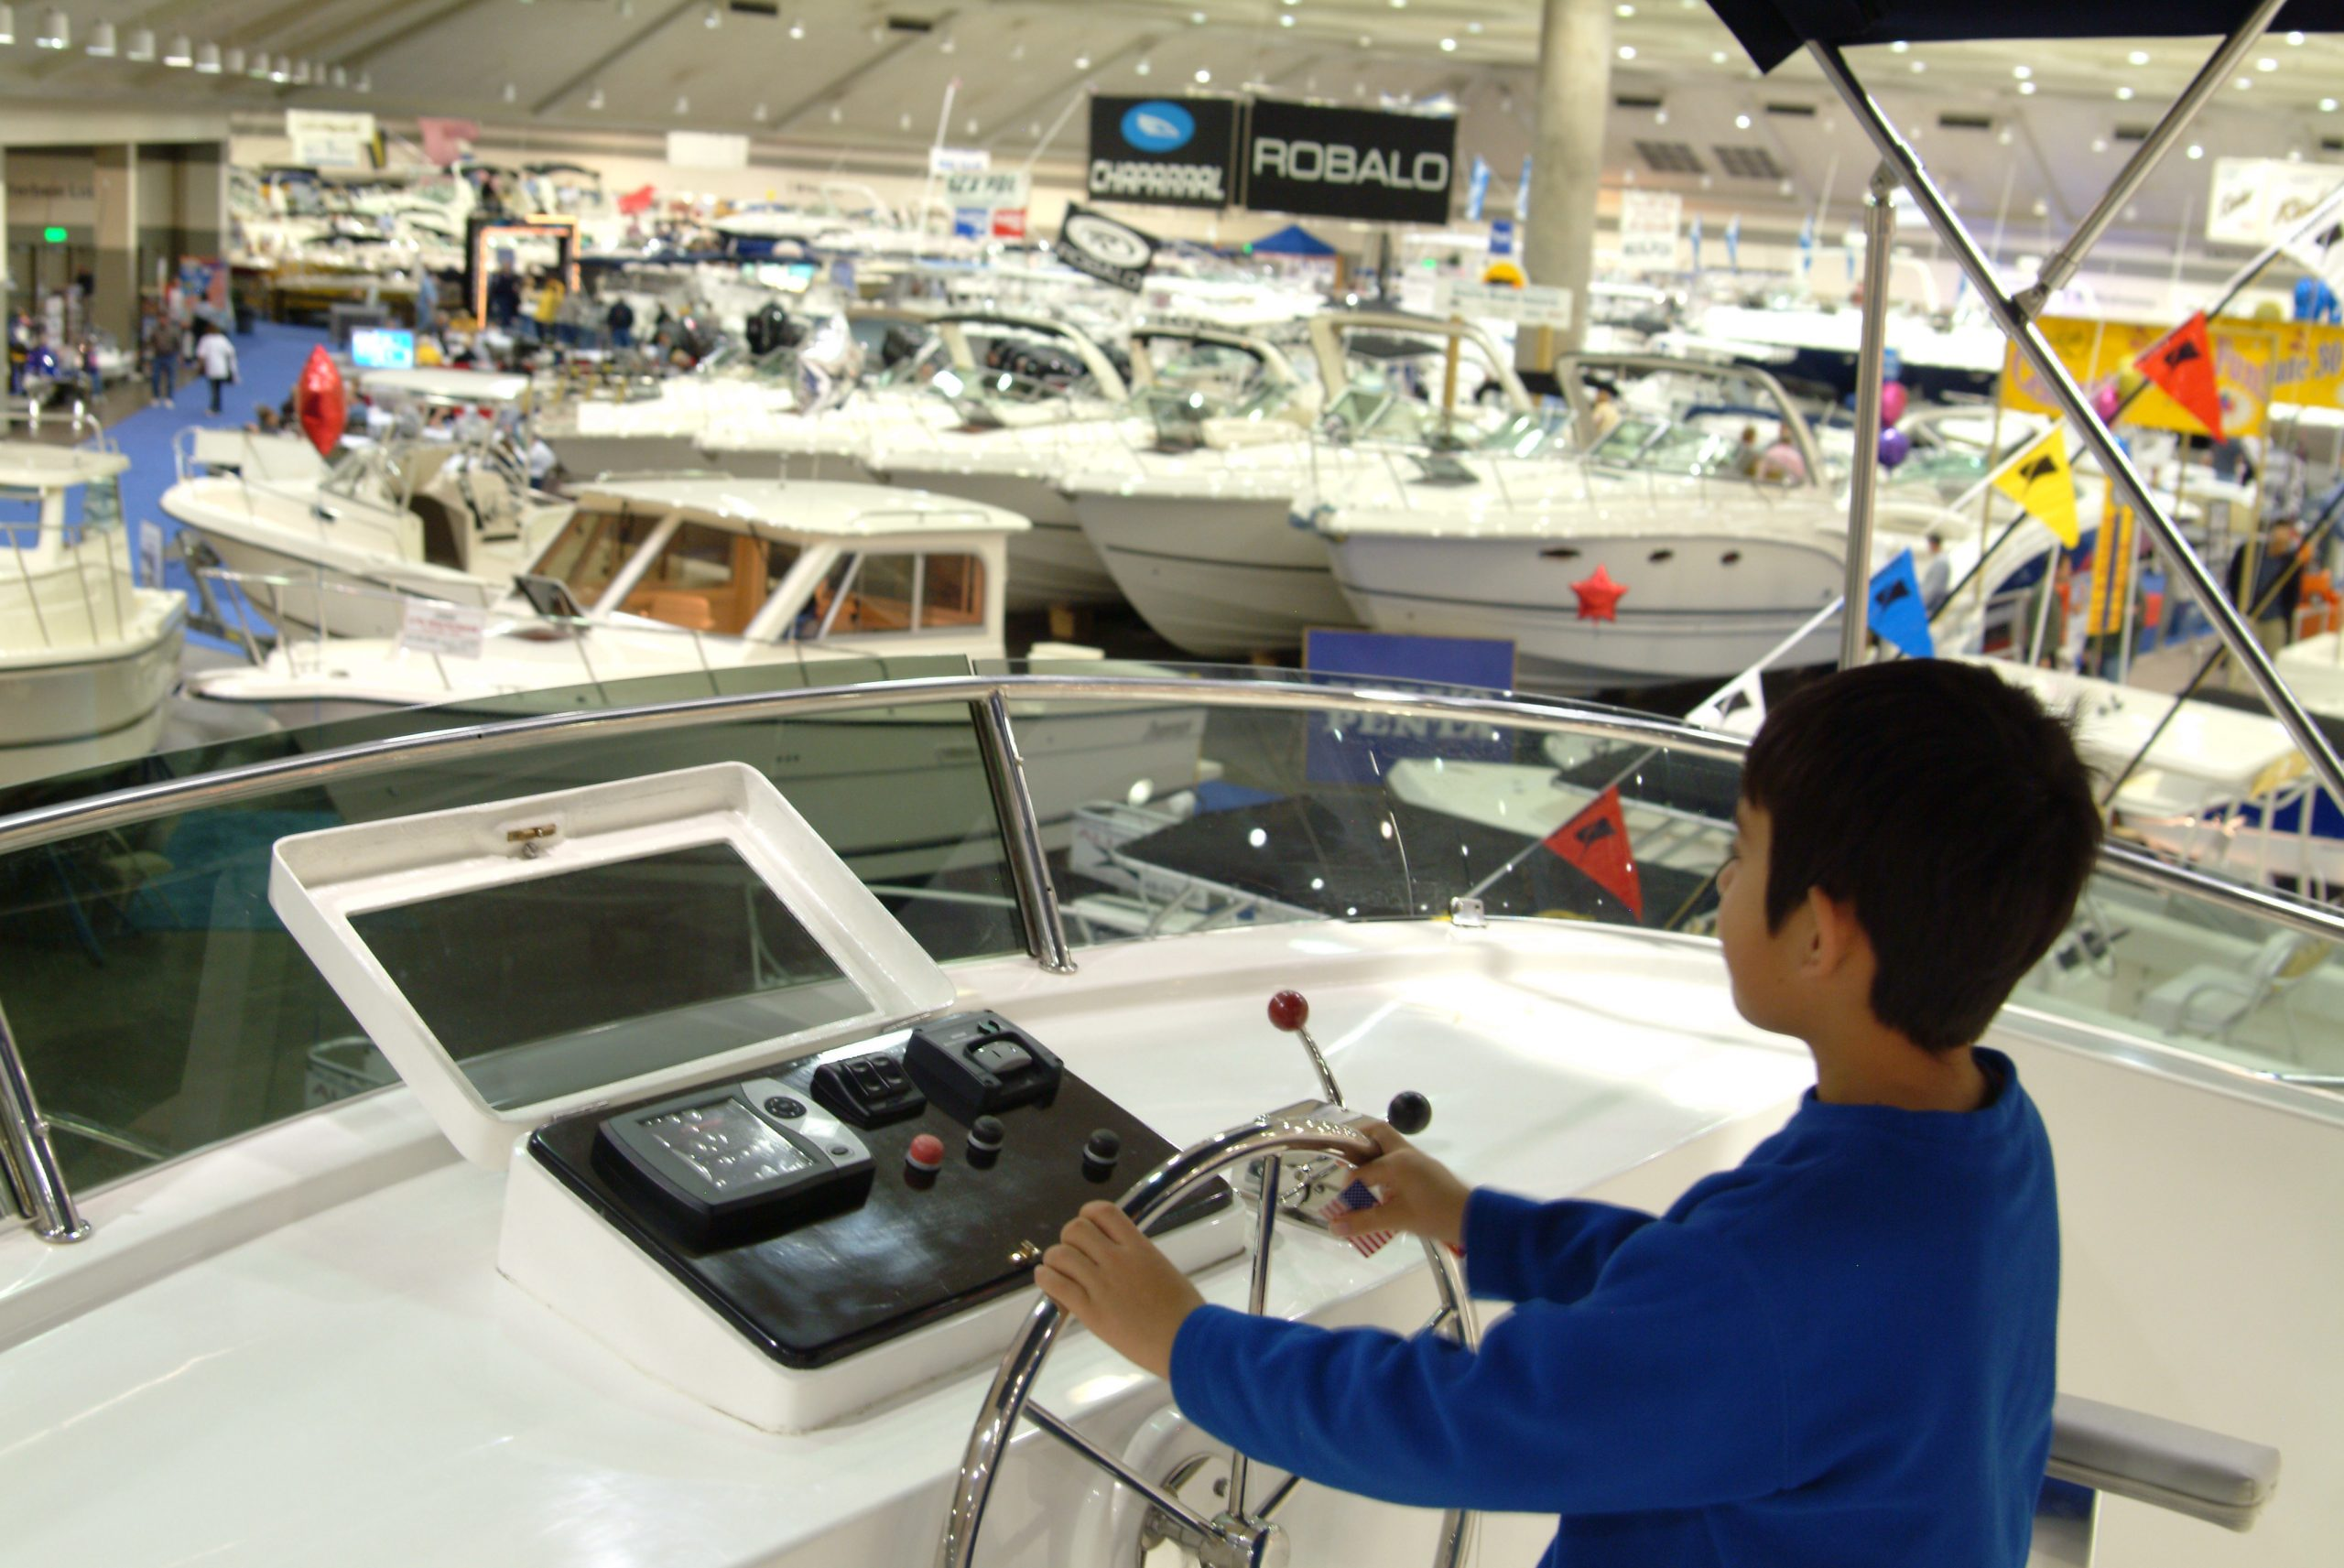 West Coasts premier boating event debuts in-water location, providing attendees more boats, yachts and marine products to shop, more nautical...